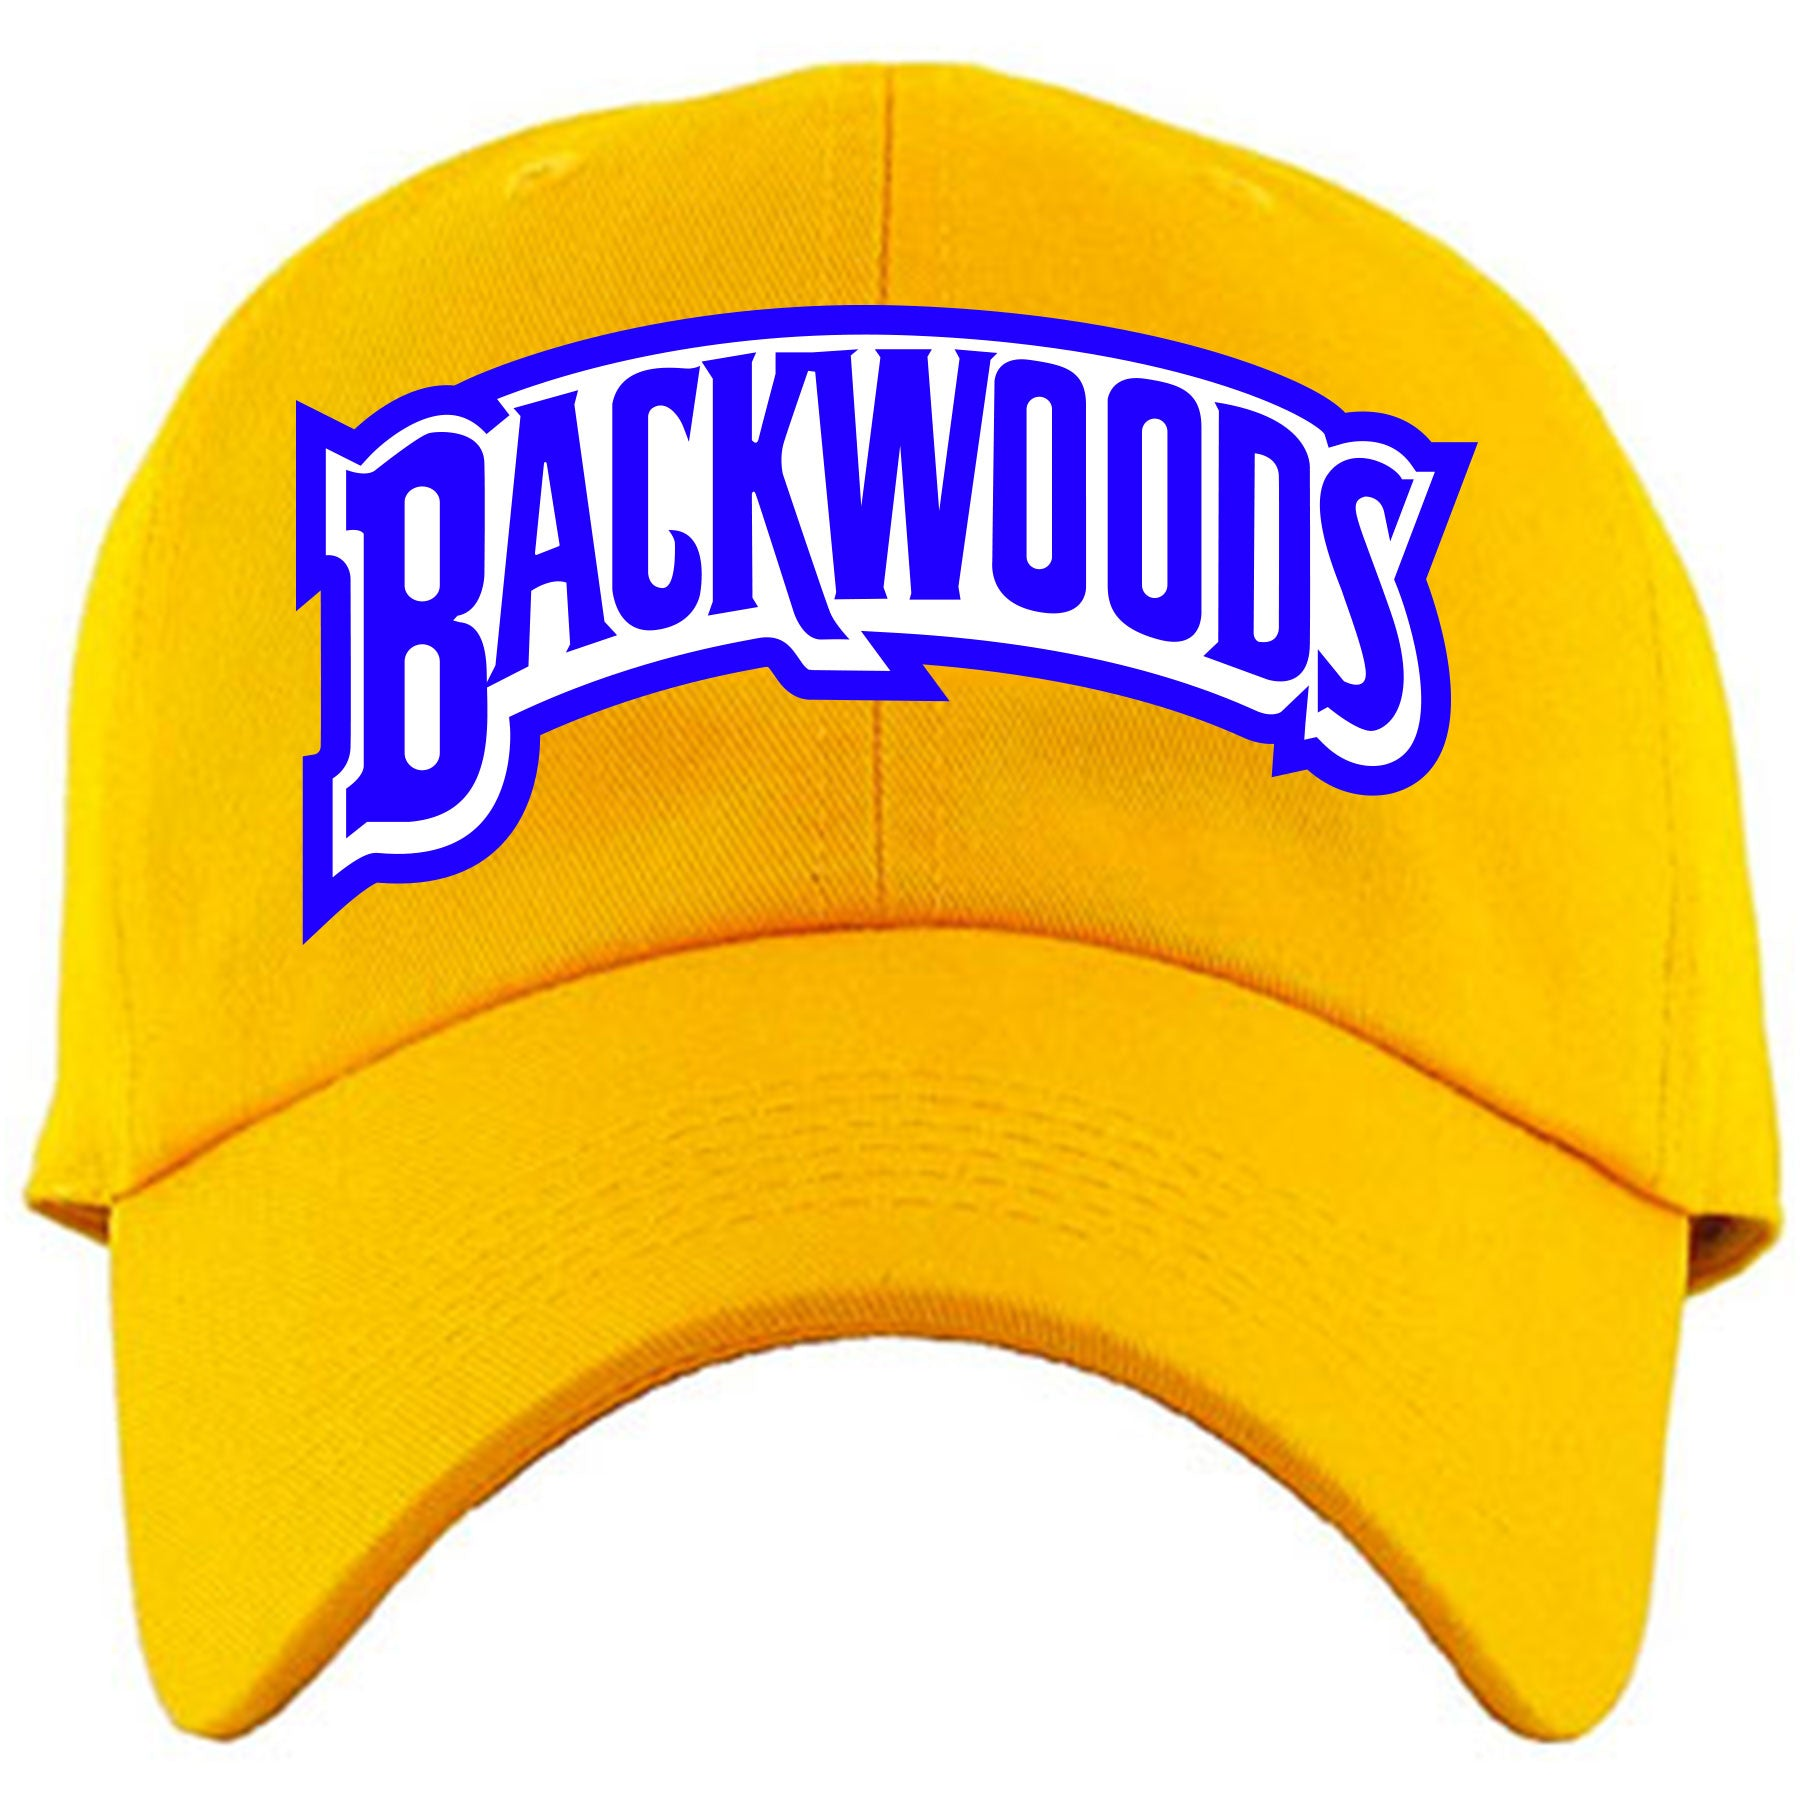 8d1c35fc6472 ... Alternate Laney JSP Sneaker Matching Backwoods Yellow Dad hat   Embroidered on the front of the Air Jordan 5 Laney sneaker matching black  dad hat is